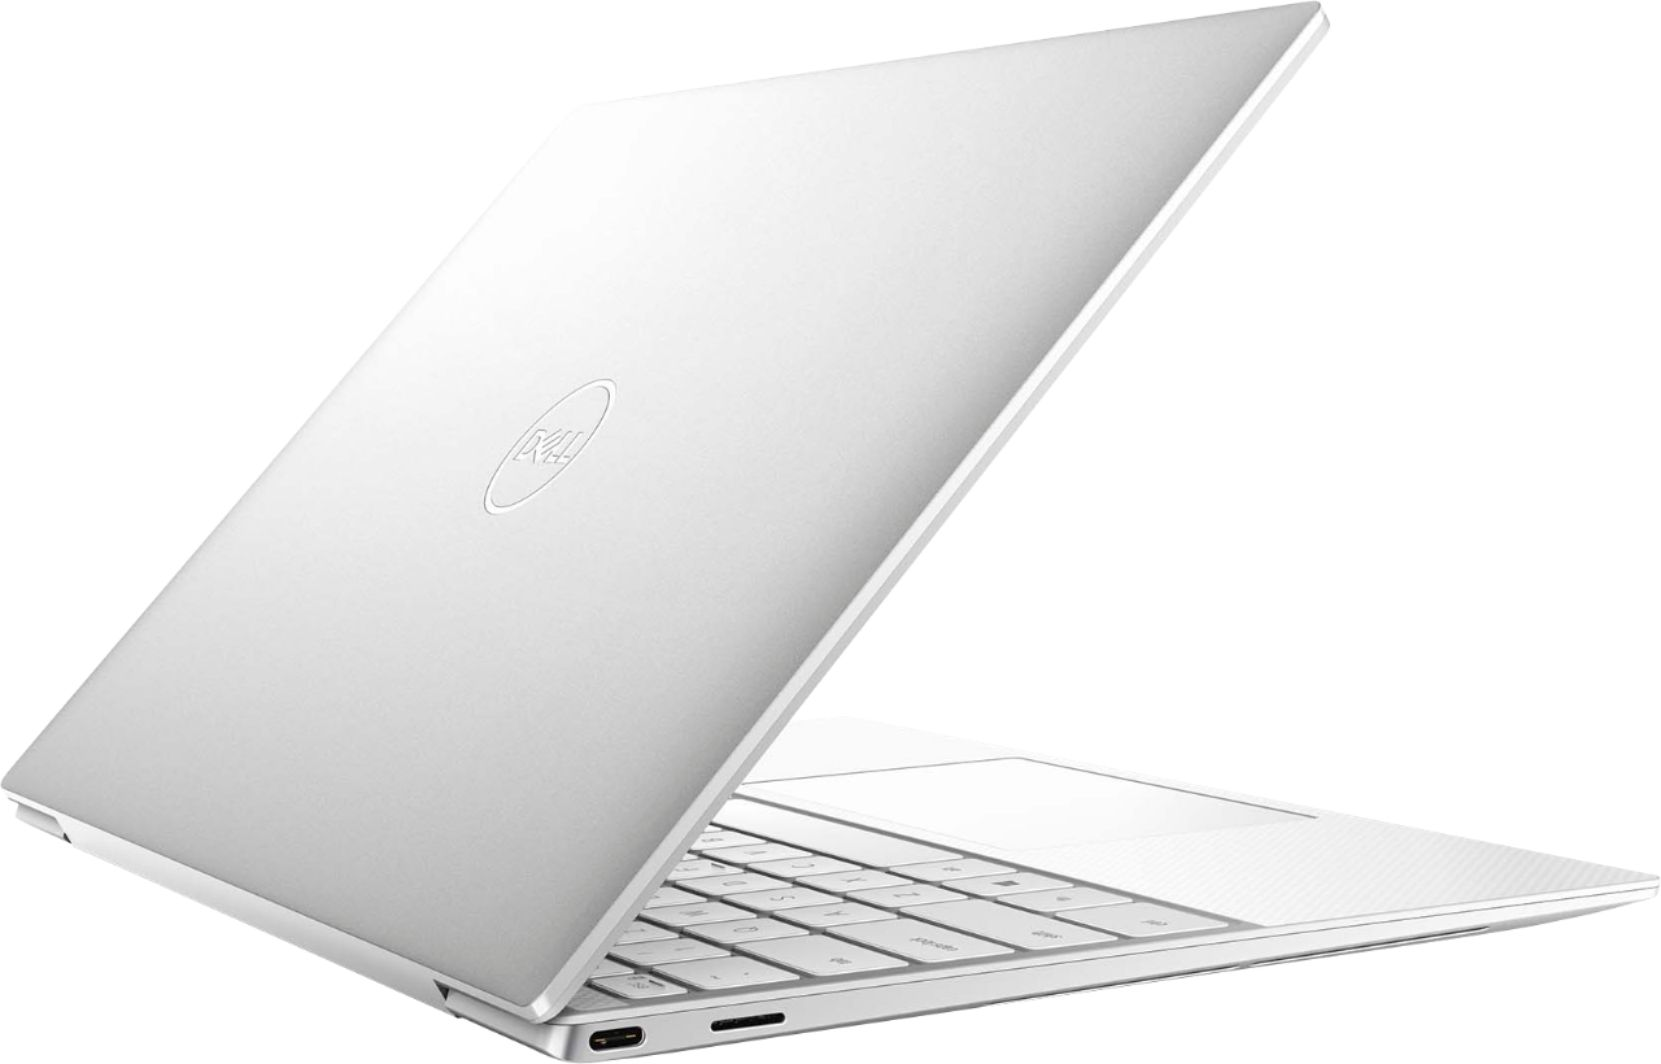 """Alt View Zoom 1. Dell - XPS 13.4"""" UHD+ Touch Laptop - Intel Core i7 - 16GB Memory - 512GB SSD - Frost White."""